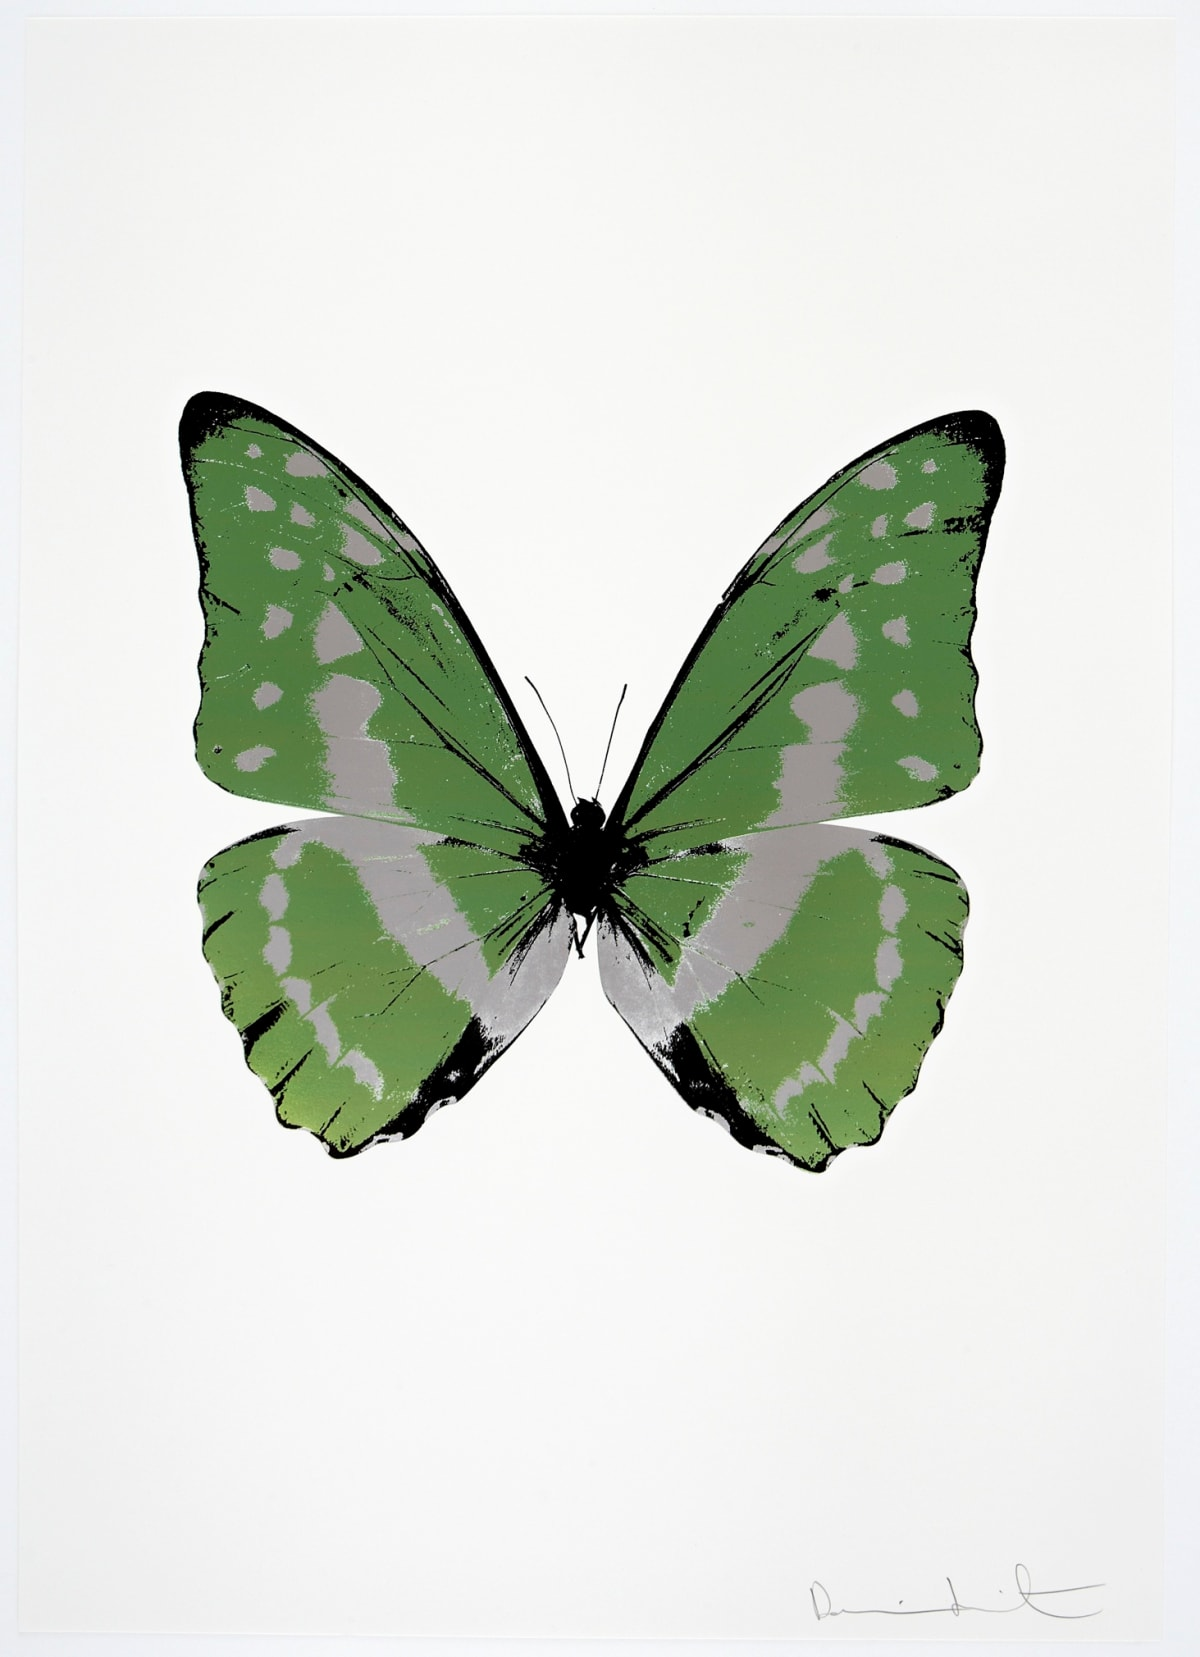 Damien Hirst The Souls III - Leaf Green/Silver Gloss/Raven Black, 2010 3 colour foil block on 300gsm Arches 88 archival paper. Signed and numbered. Published by Paul Stolper and Other Criteria 72 x 51cm OC7945 / 660-48 Edition of 15